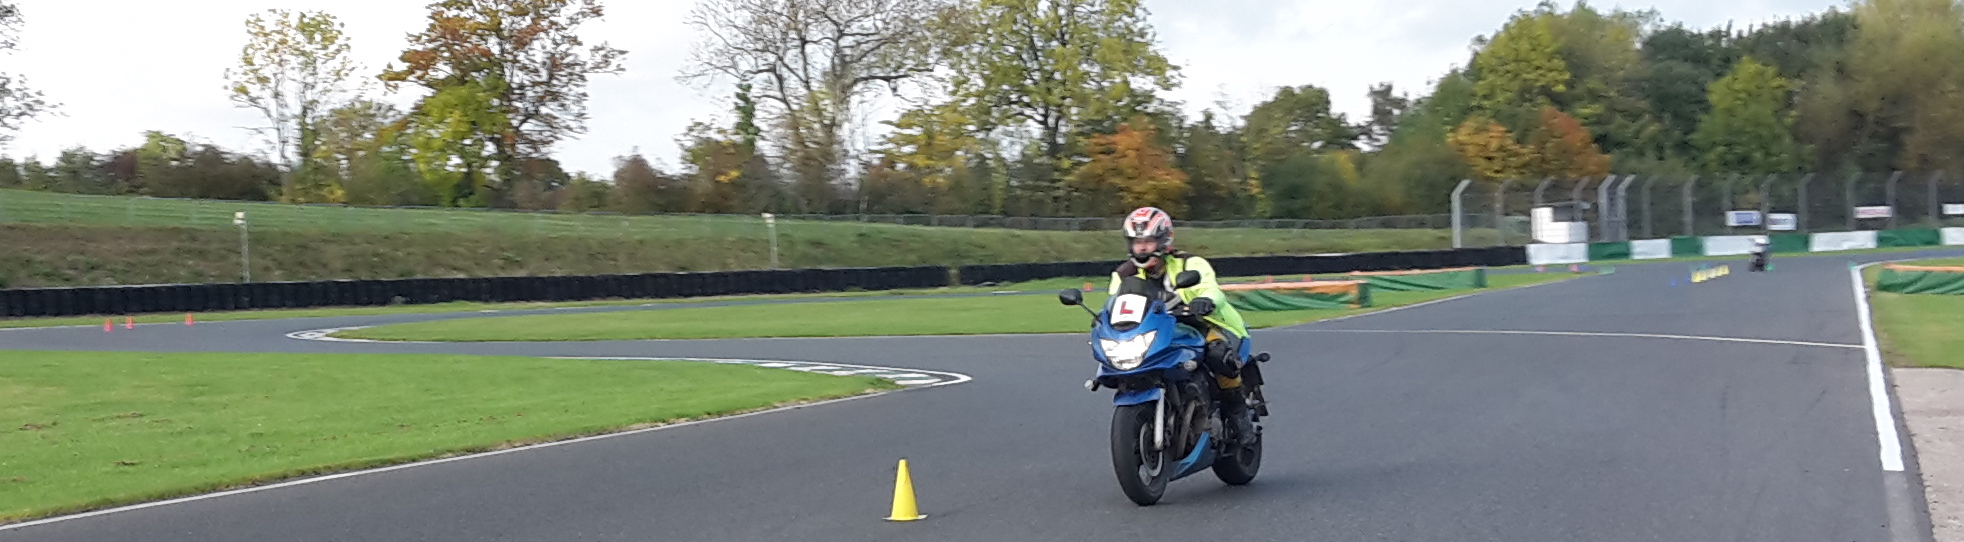 Motorcycle training London, Luton, Stevenage, Cheltenham, Gloucester, Worcester, Birmingham Watford